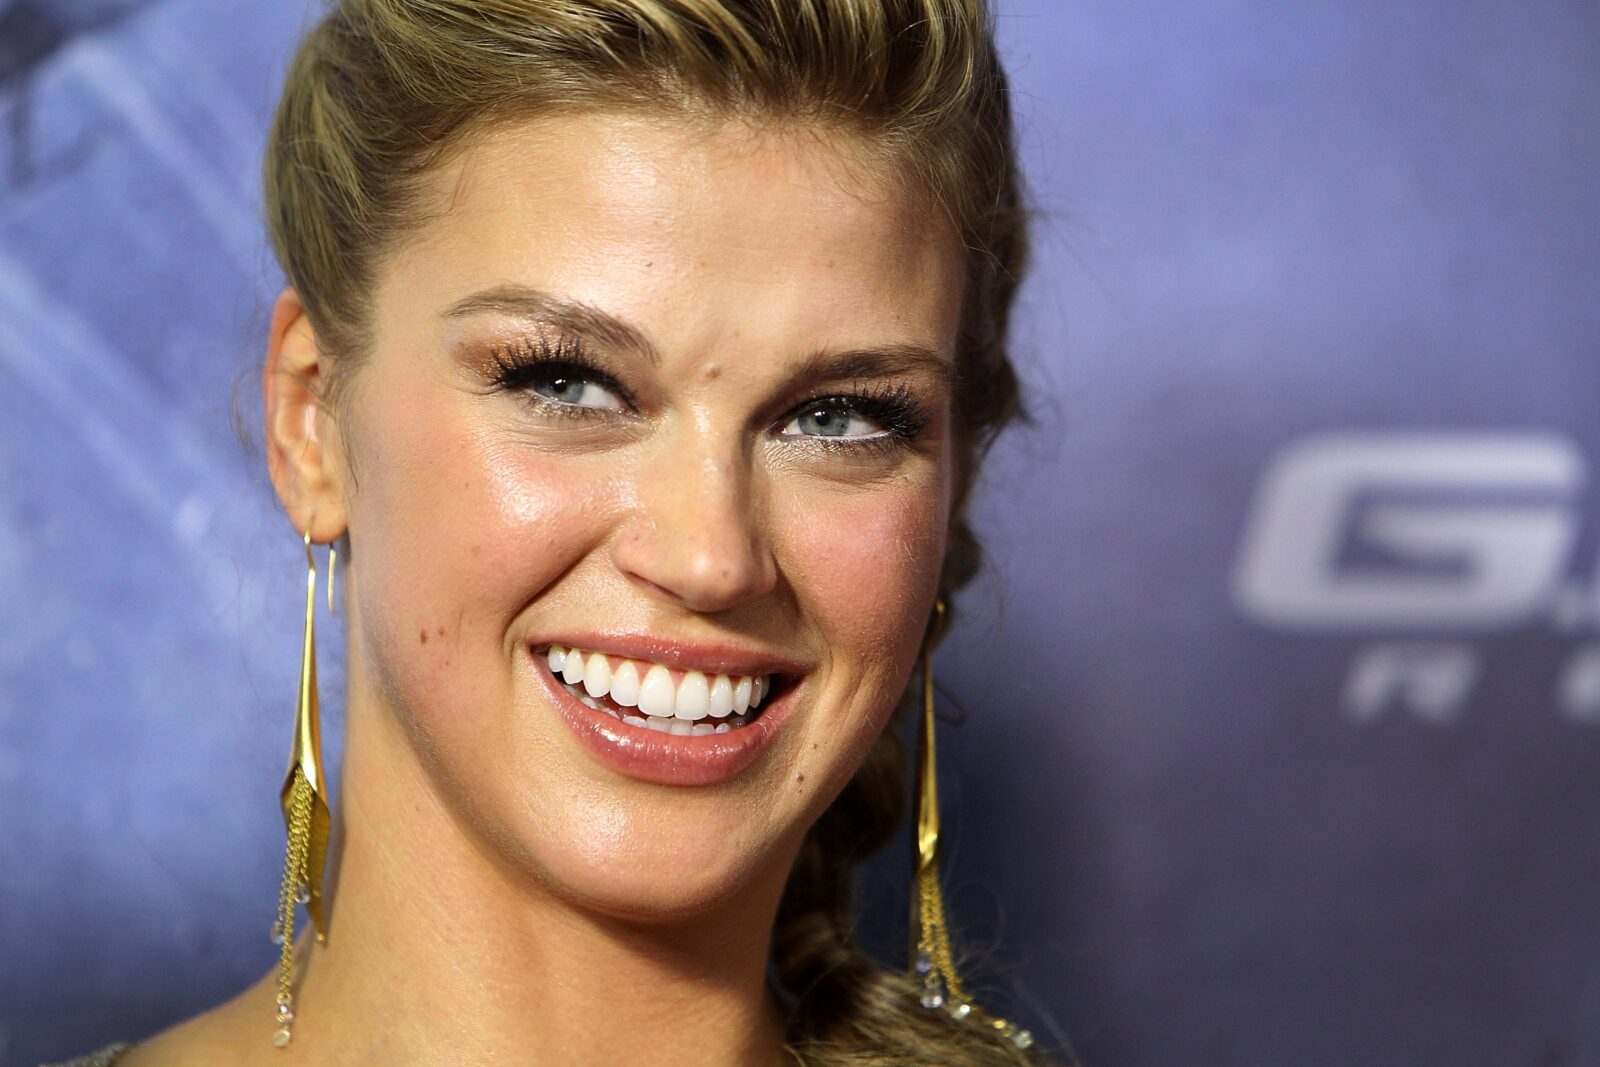 Adrianne Palicki Smile Image Hd Image 9 On Wallpapersqq